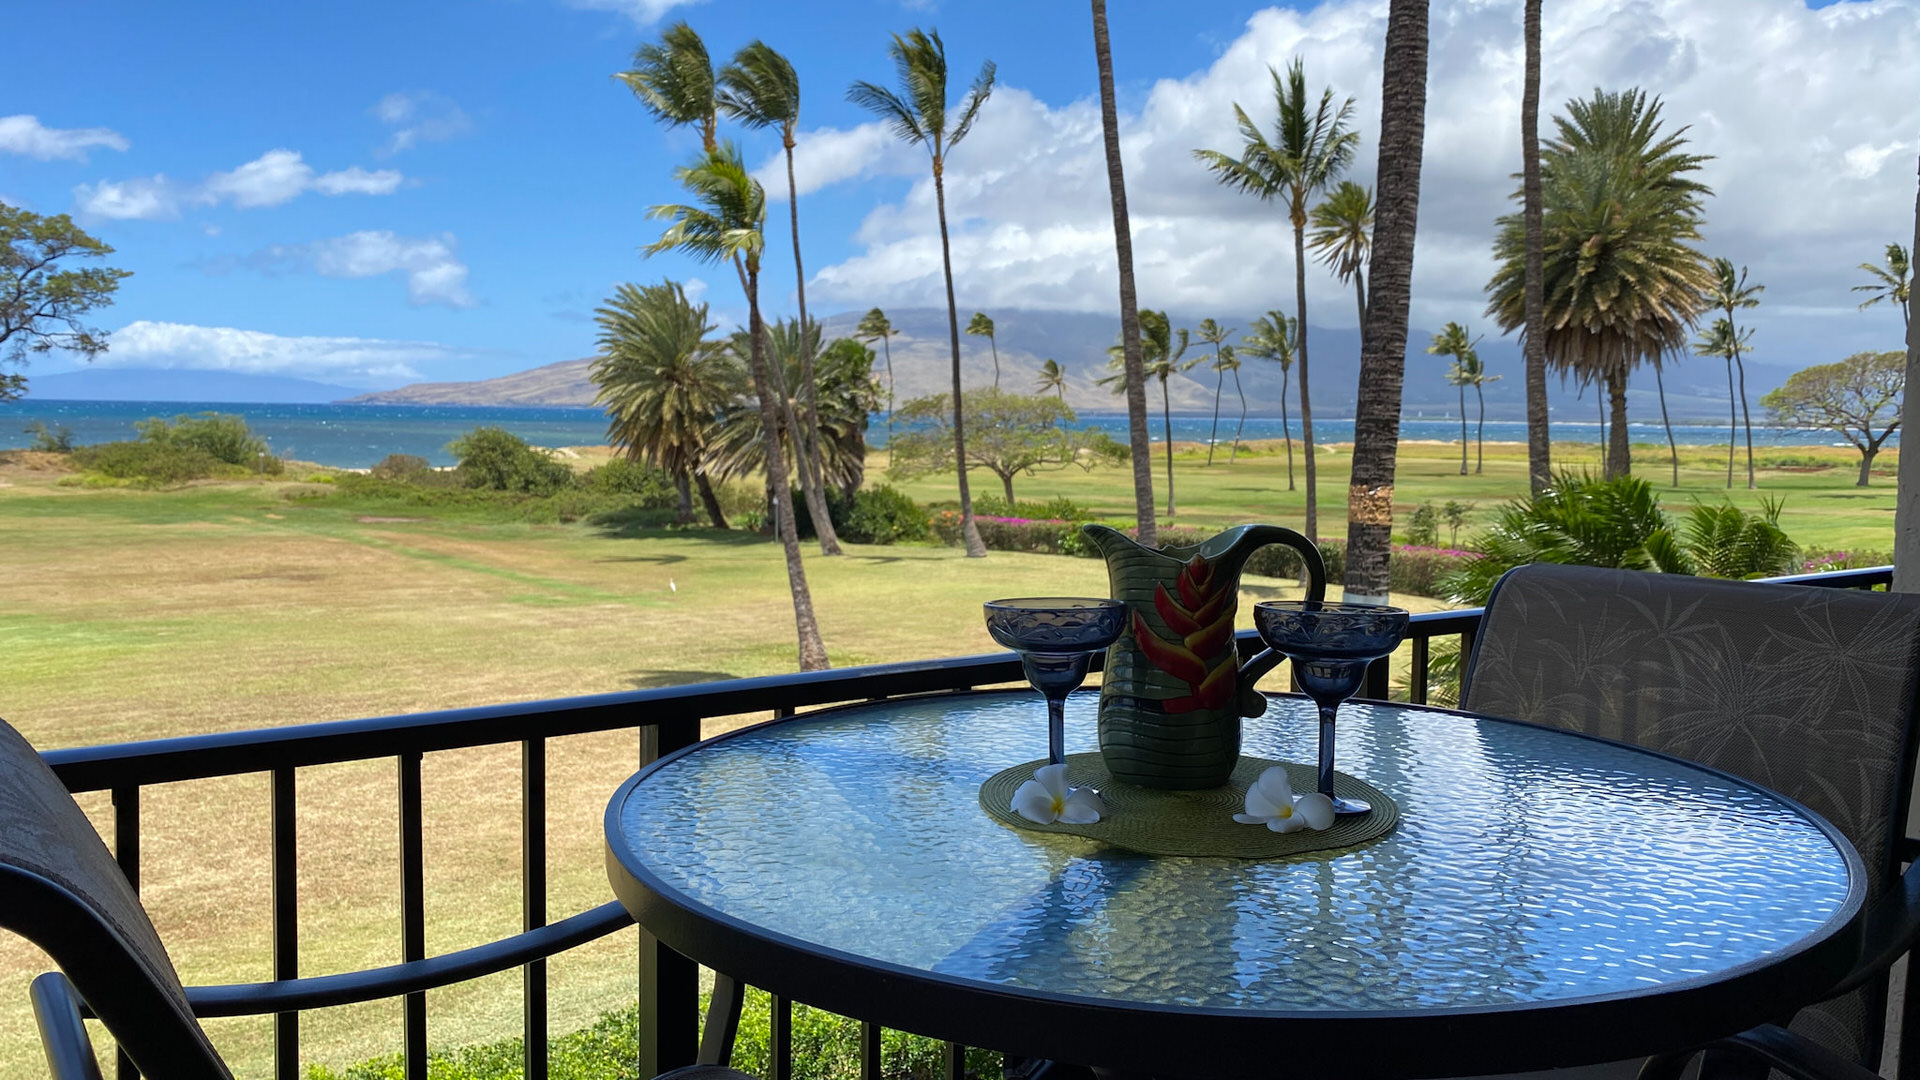 A201 Lanai Dining and View